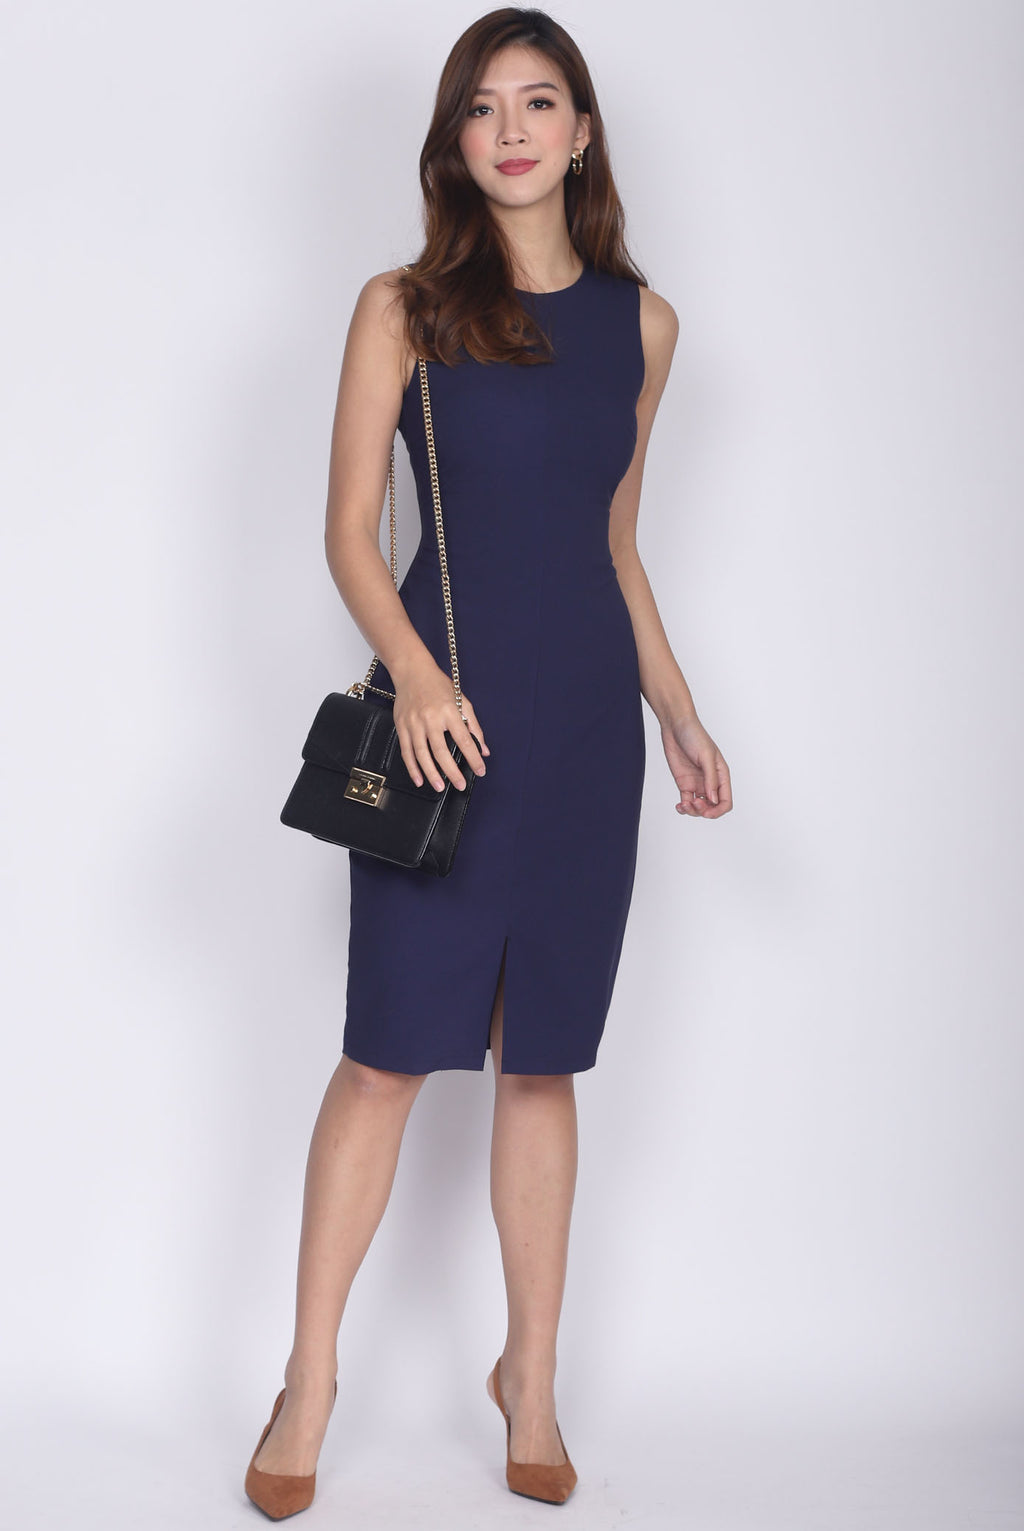 *Restocked* TDC Montrel Classic Midi Dress In Navy Blue